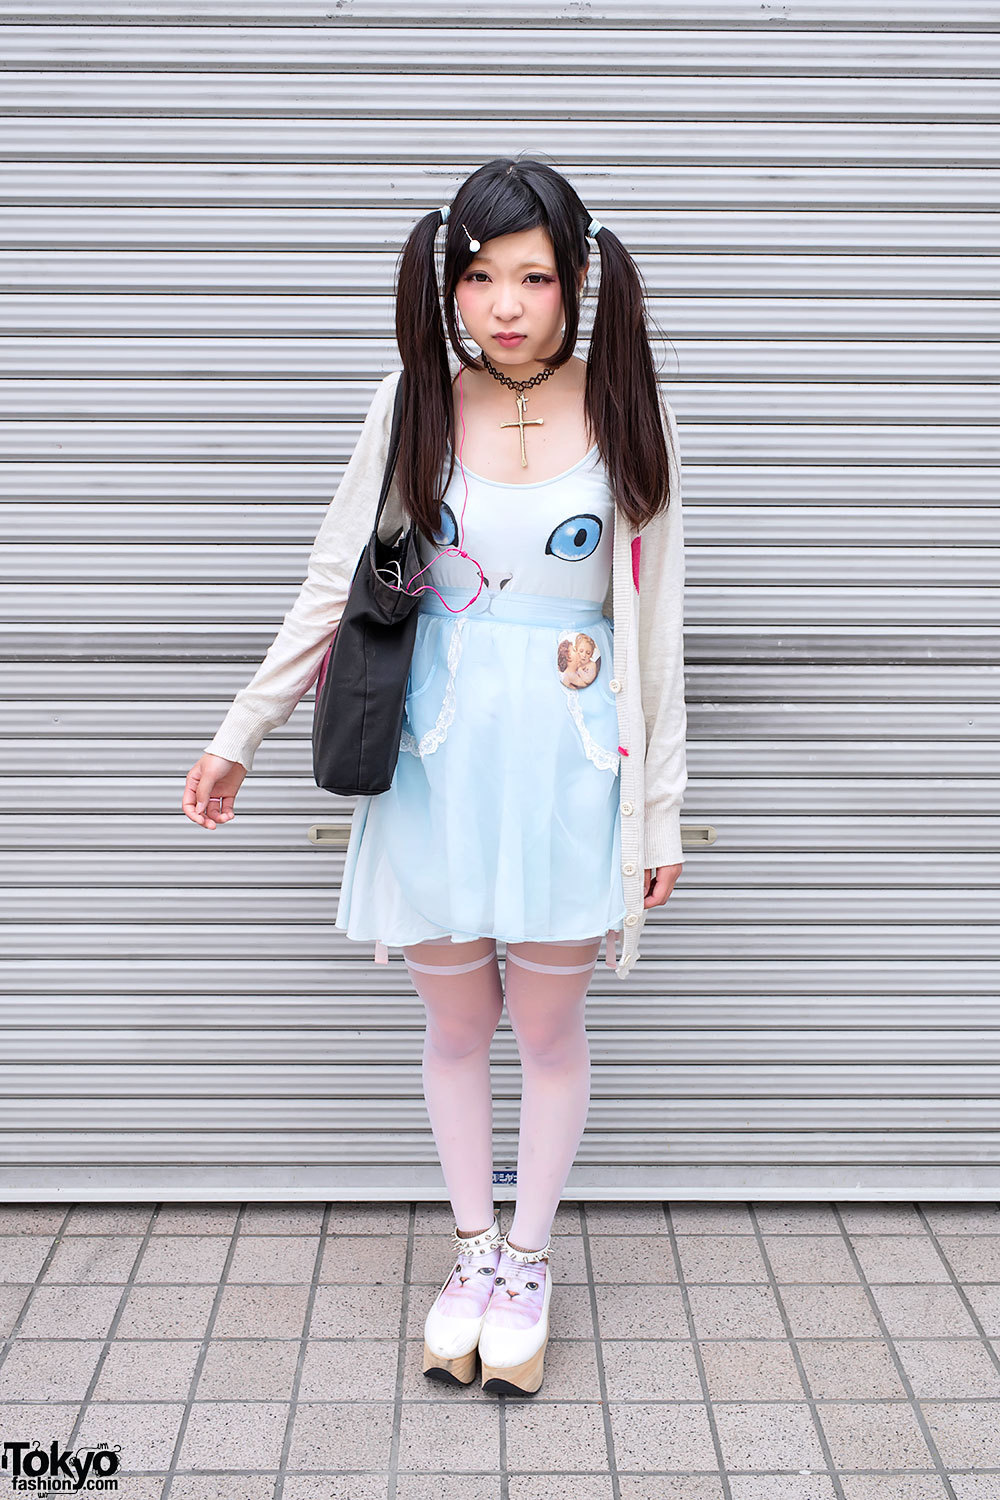 Cute cat dress & cat socks w/ rocking horse shoes in Harajuku.